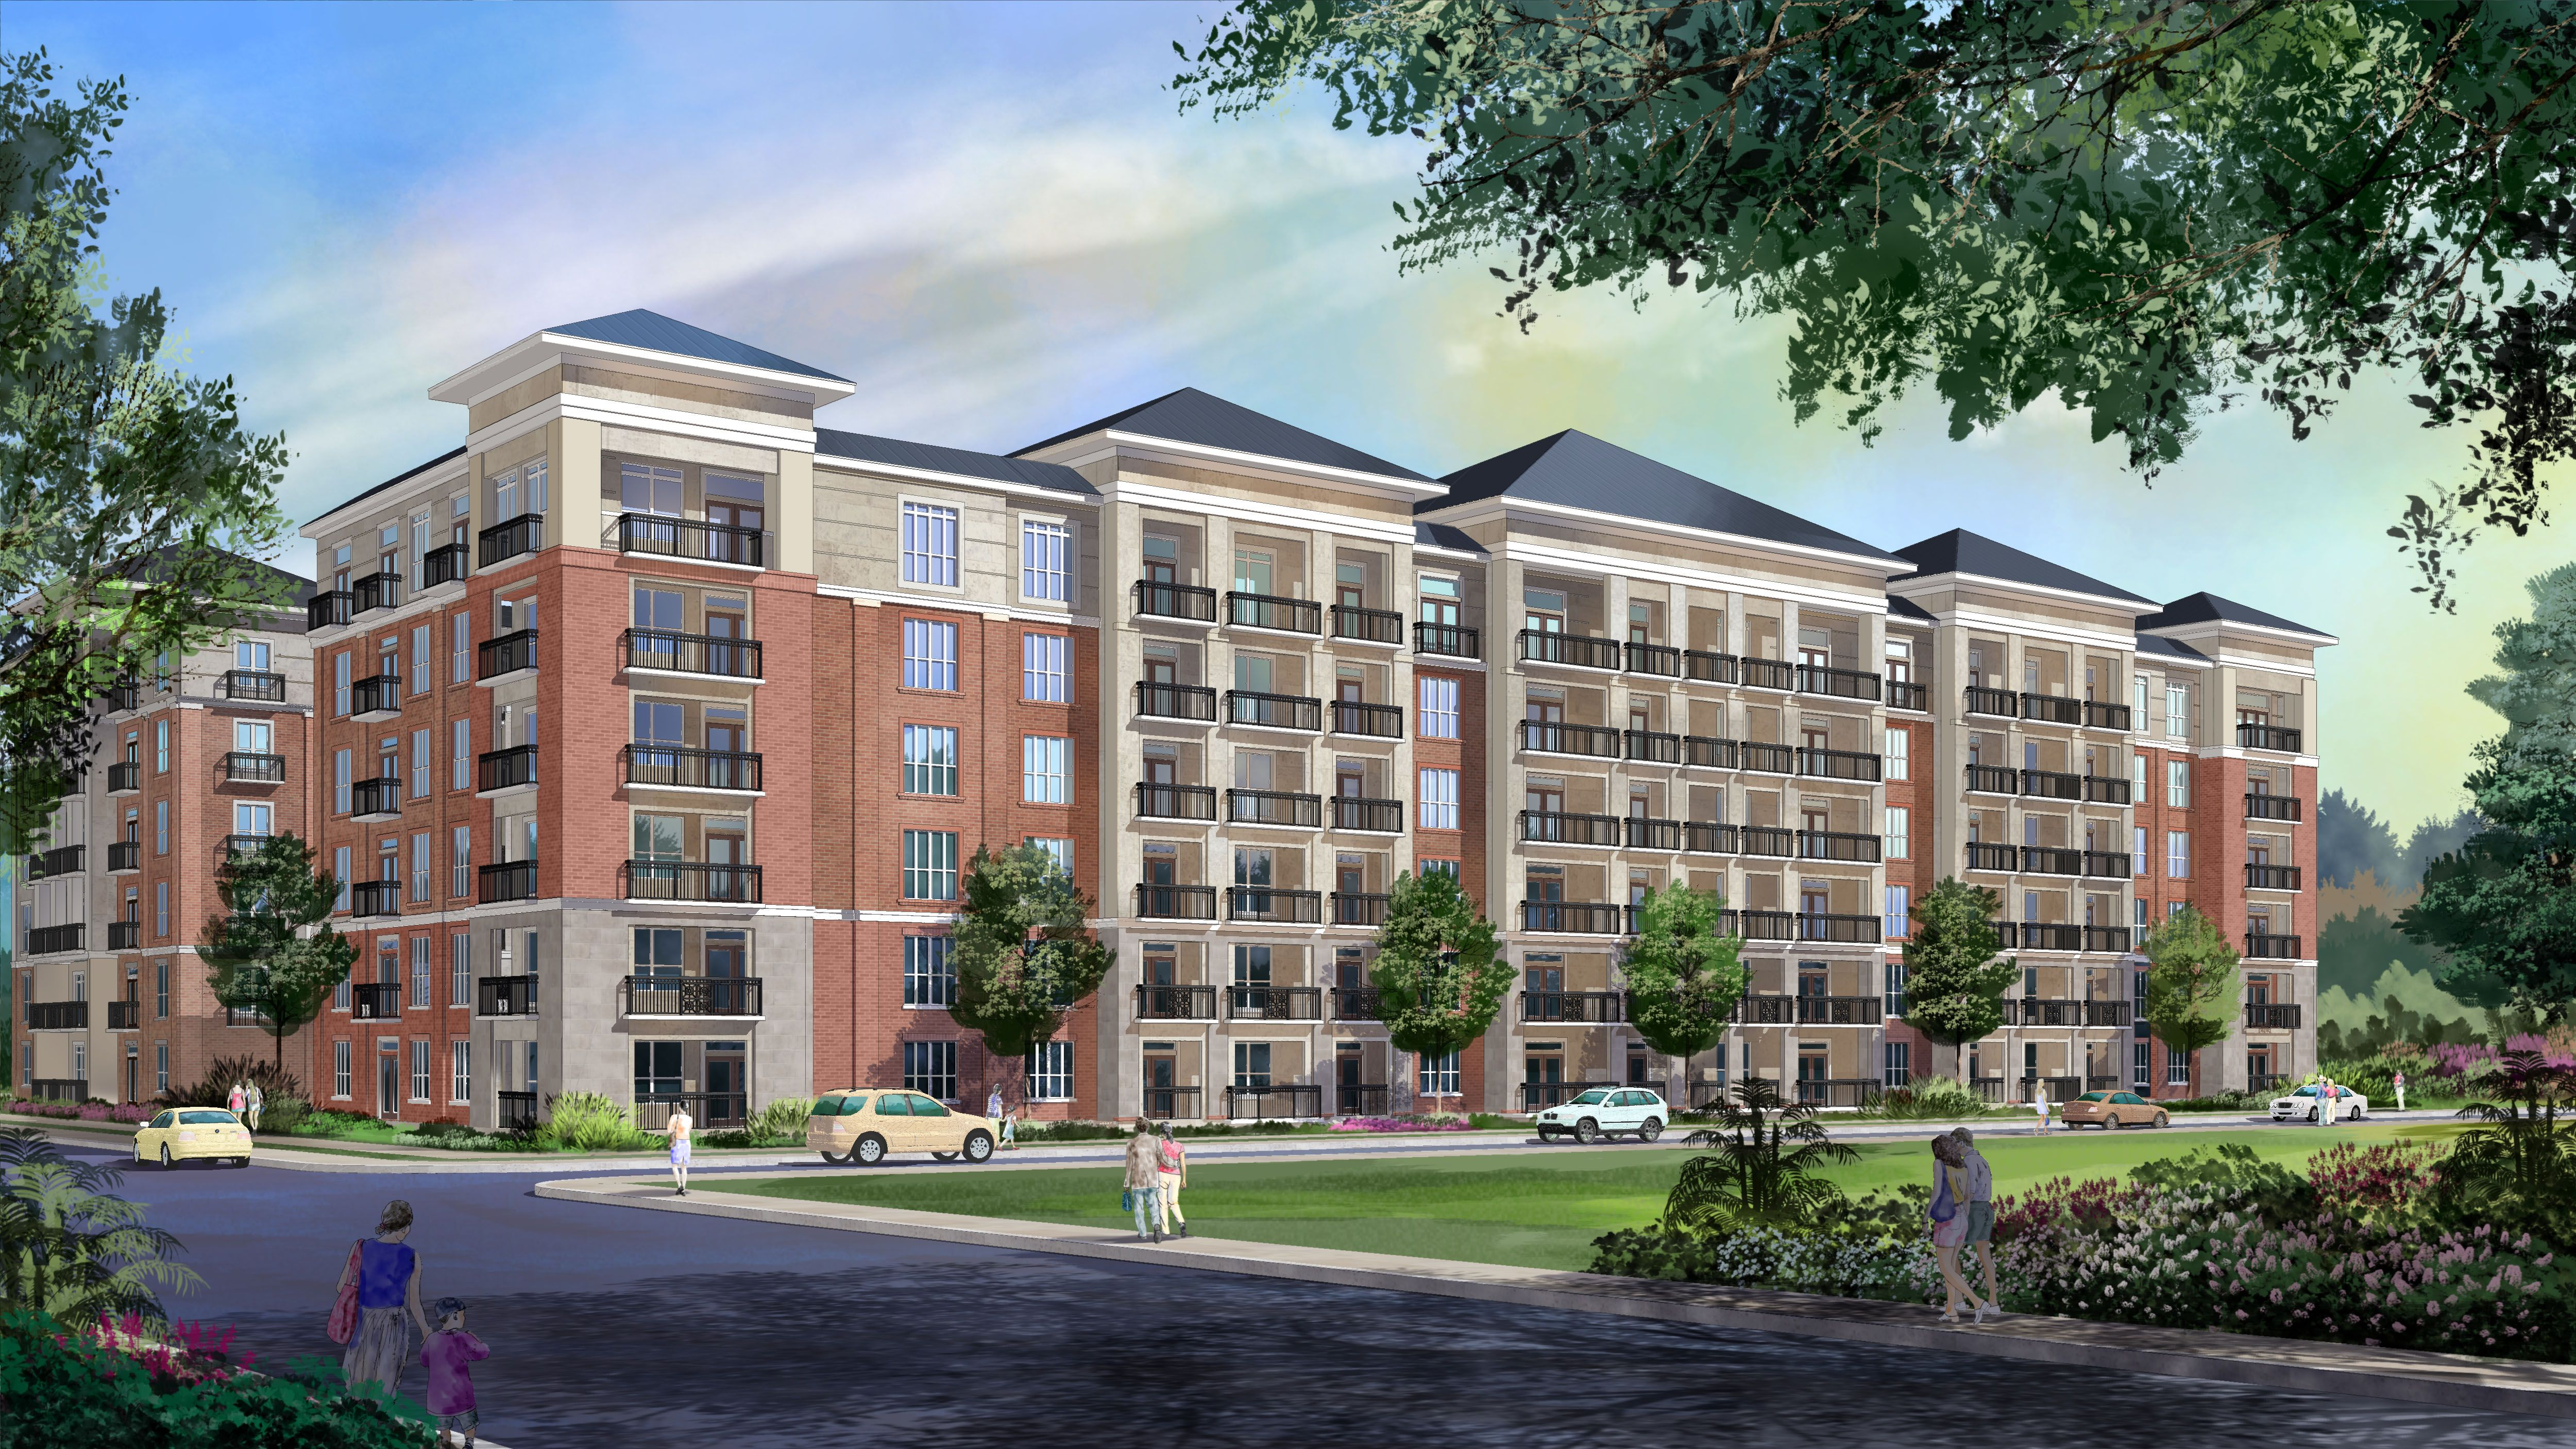 New Luxury Mid Rise Apartments For Rent In Houston Tx West Dallas Apartments Dallas Apartment Houston Apartment Apartment Communities